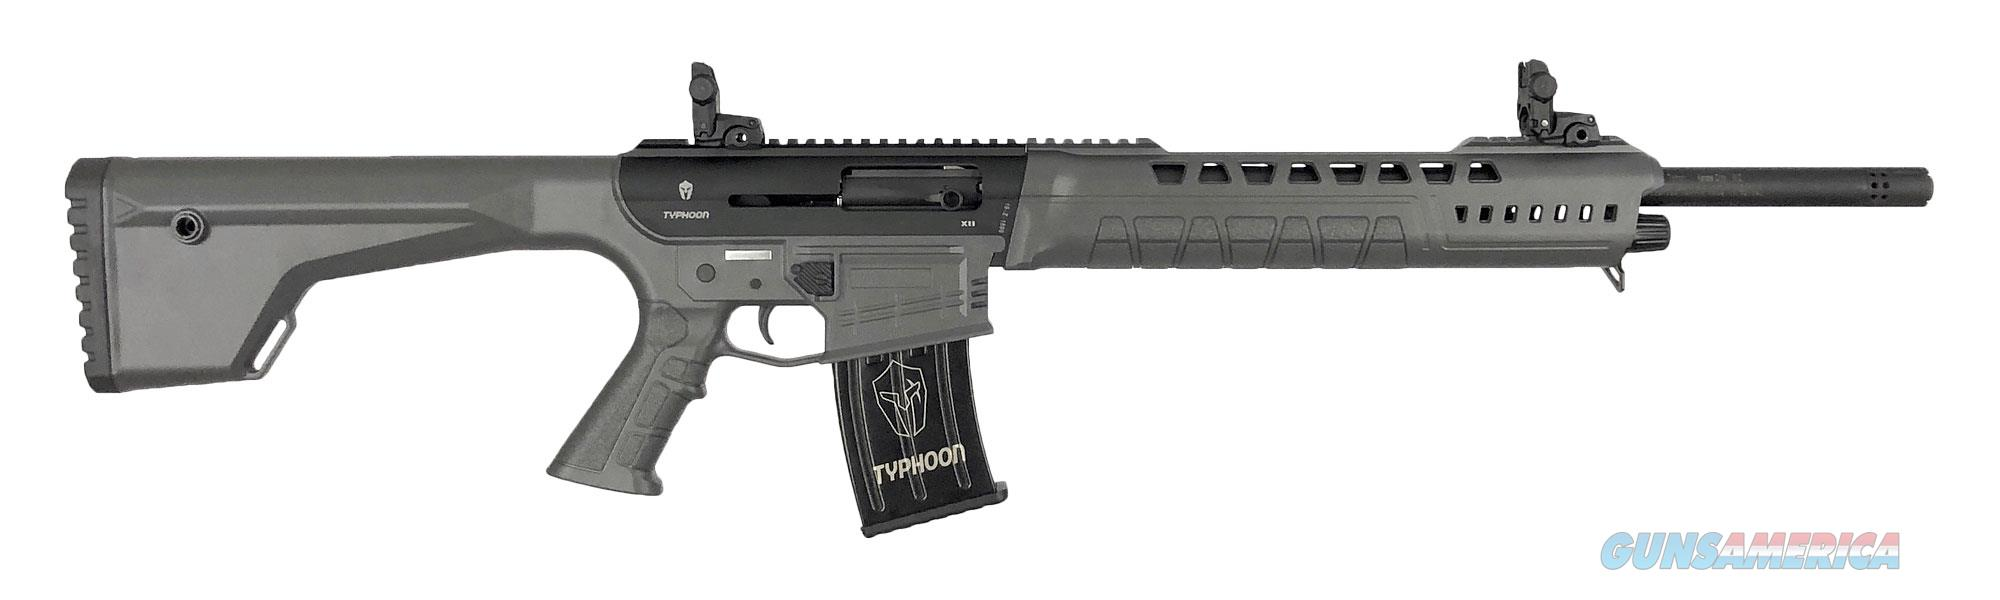 "Typhoon Defense X12 AR-15 12 GA Shotgun 18.5"" X120301   Guns > Shotguns > TU Misc Shotguns"